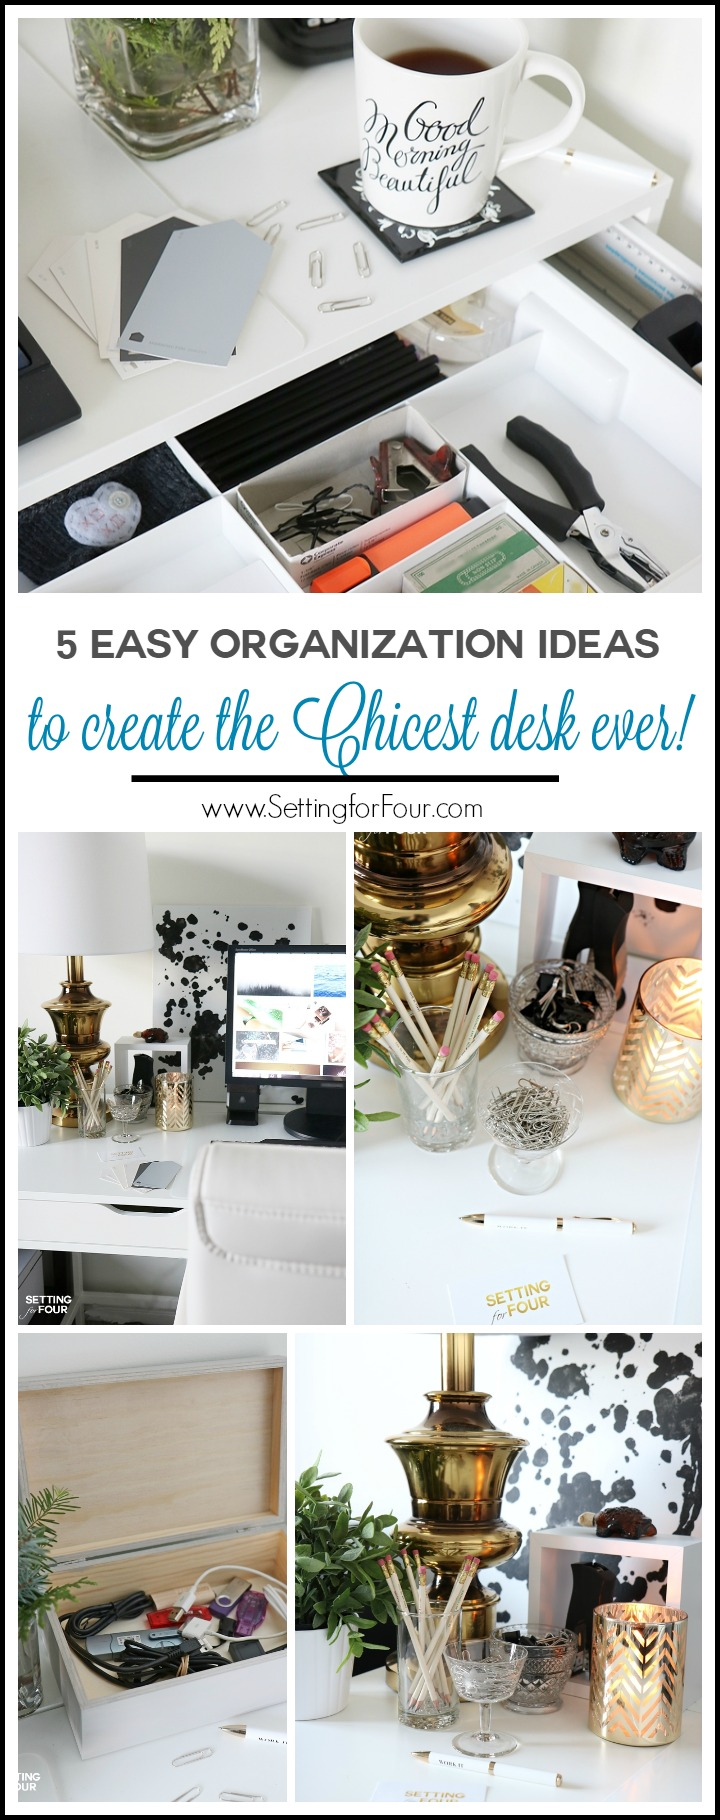 Take control of your desk so you can be more productive! How to declutter and decorate your desk in just 10 MINUTES and 5 super easy organization ideas to create the chicest desk ever!